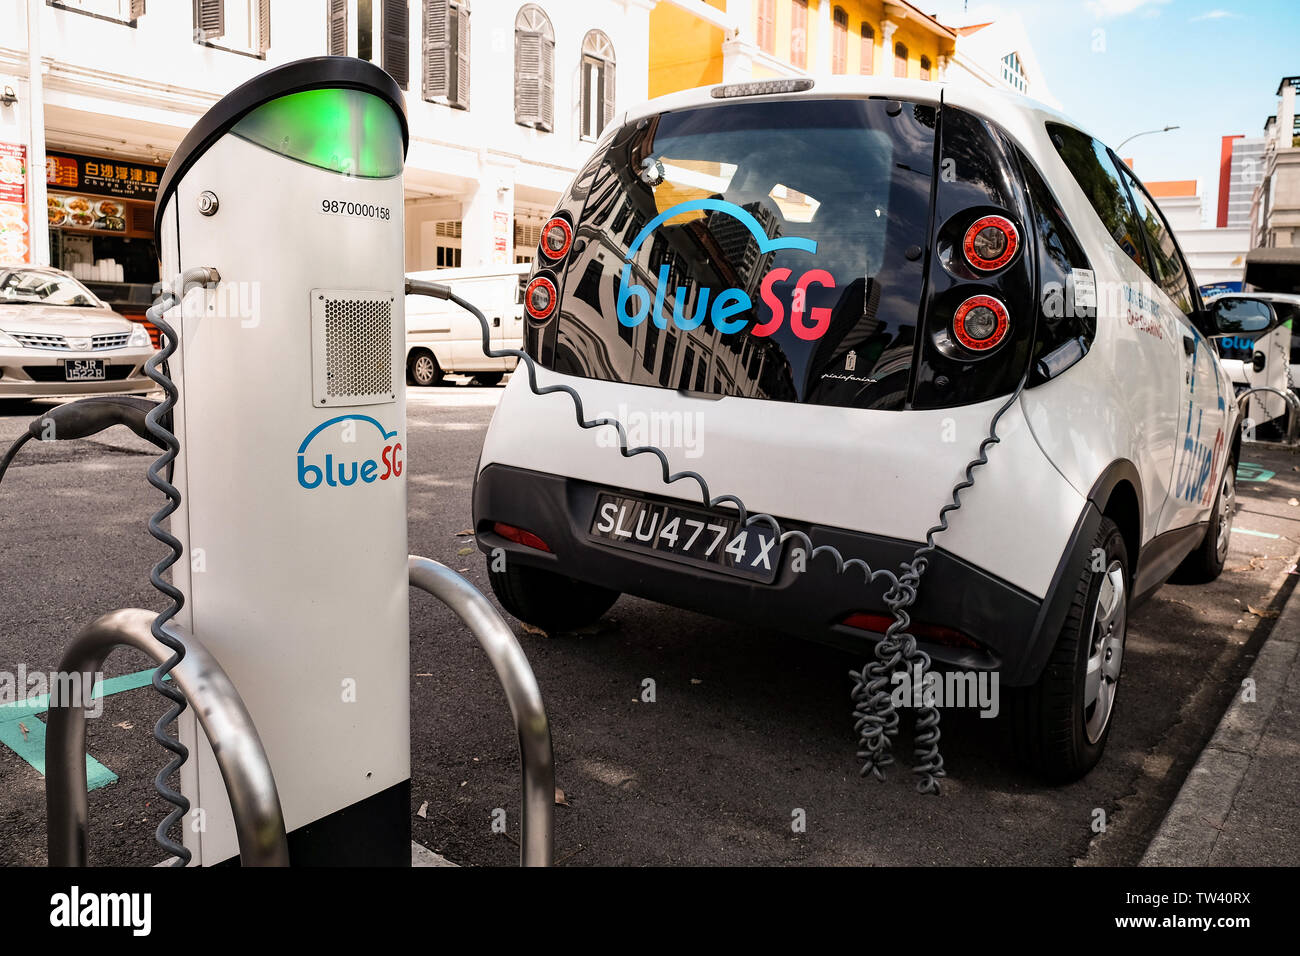 Blue SG electric car sharing scheme in Singapore with charging stations offering a clean pollution free  point to point transport network. Stock Photo